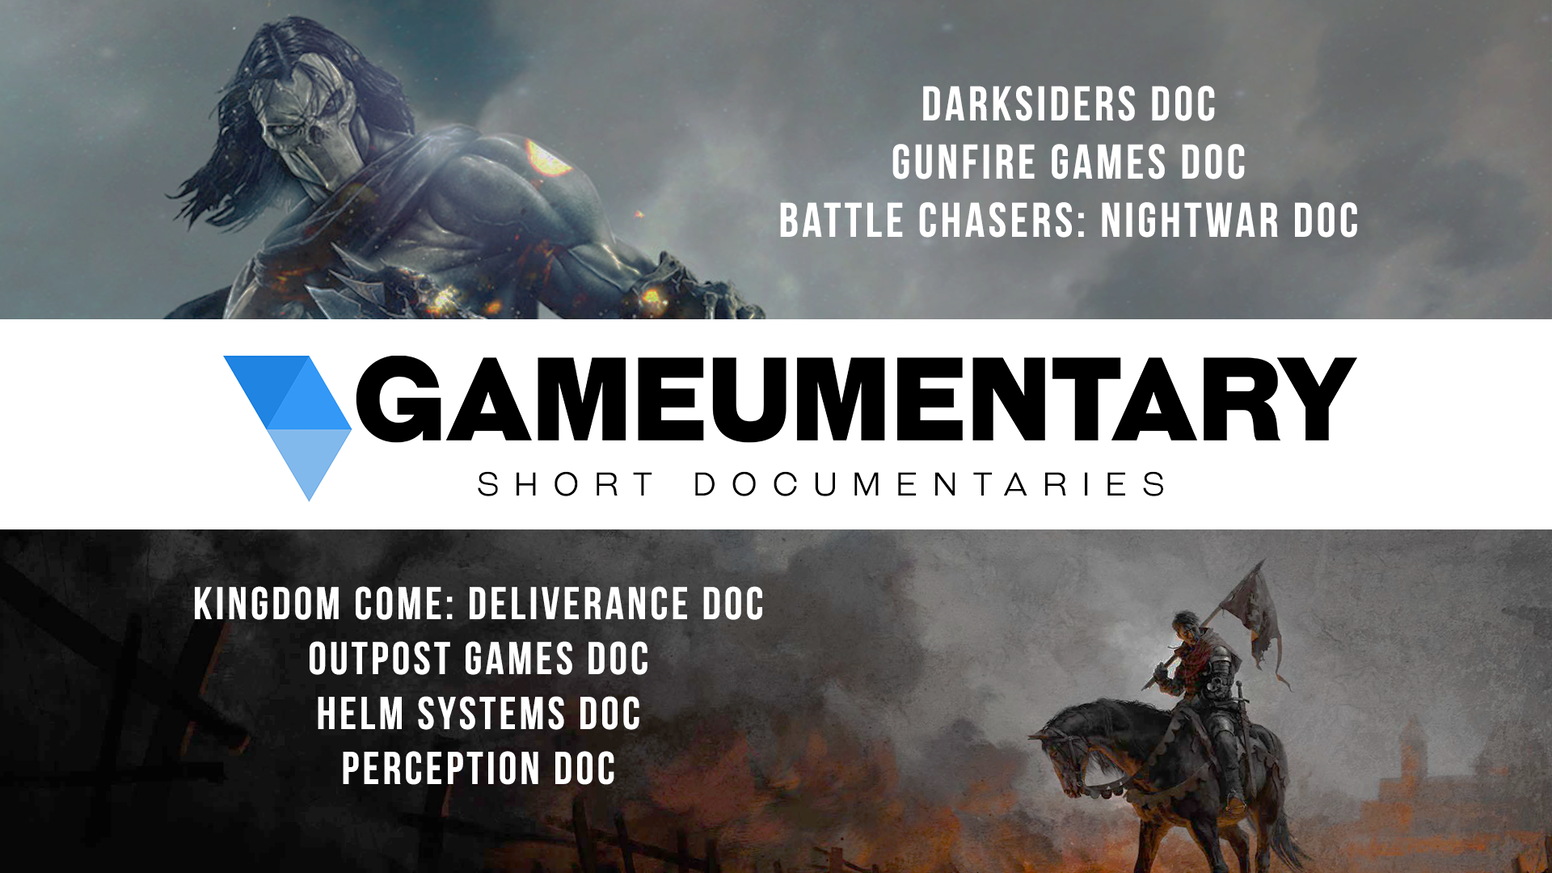 Documentaries on Darksiders, Kingdom Come: Deliverance, Battle Chasers: Nightwar & more by a team of volunteers!